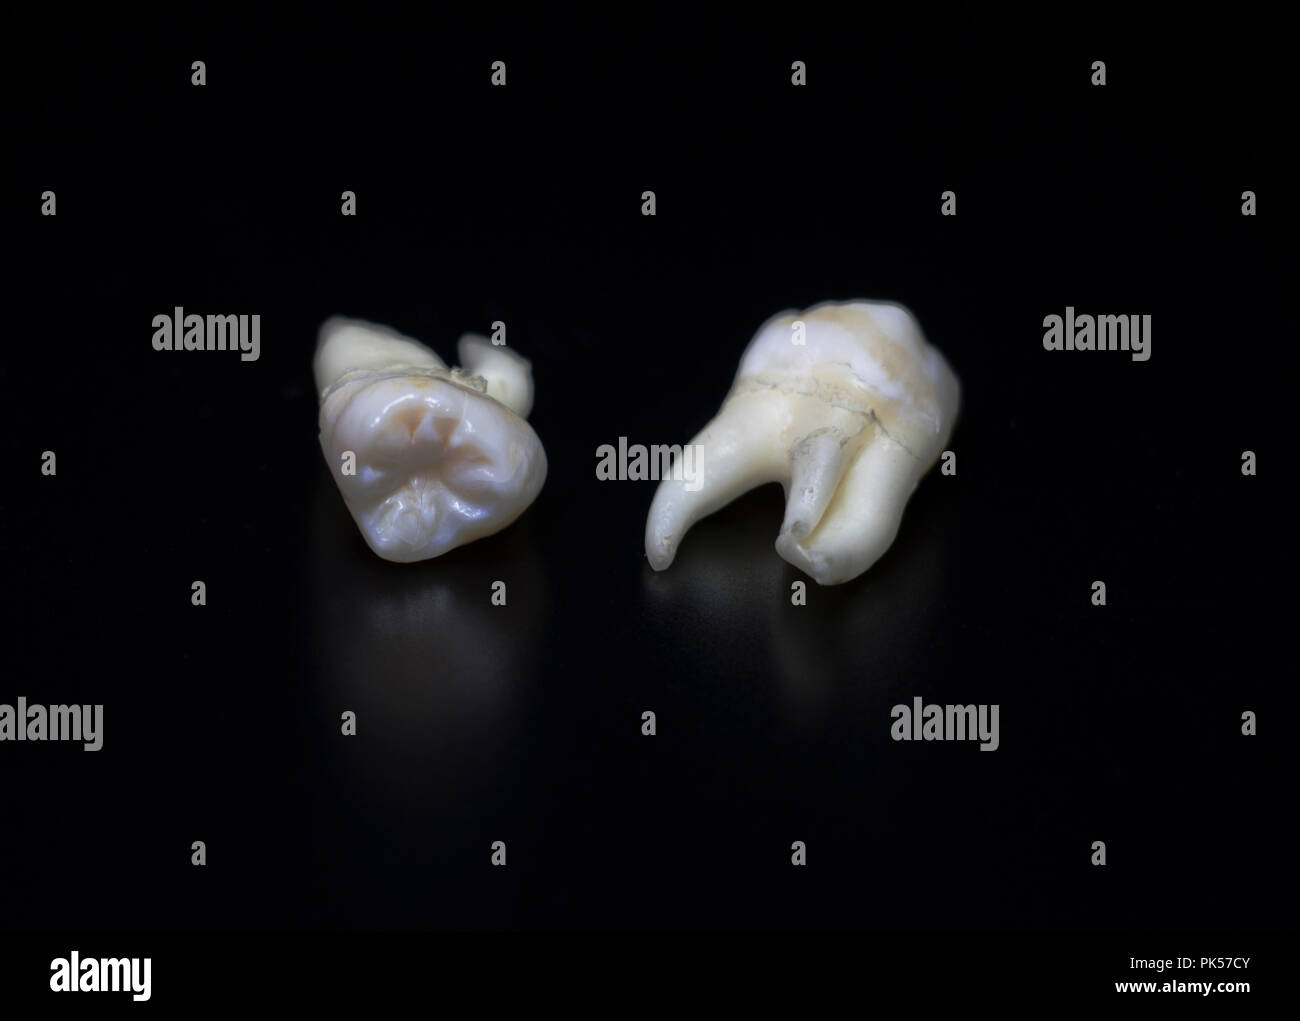 Adult teeth, extracted wisdom teeth reflecting on a black background. Human Anatomy bones and teeth. Tooth decay. Stock Photo